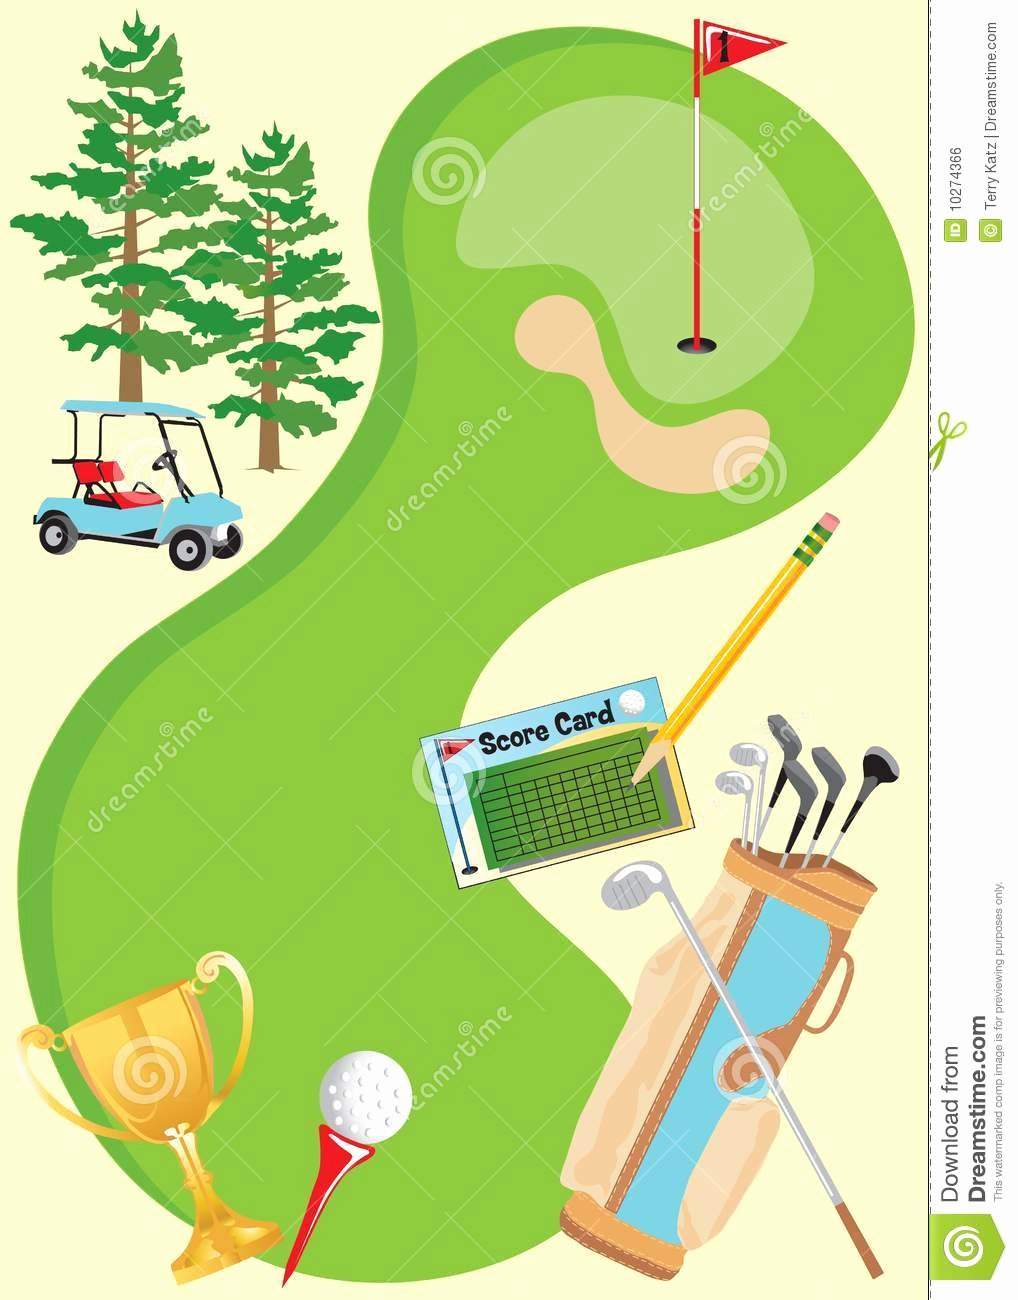 Golf Invitation Template Free Awesome Golf Invitation Poster Stock Vector Illustration Of